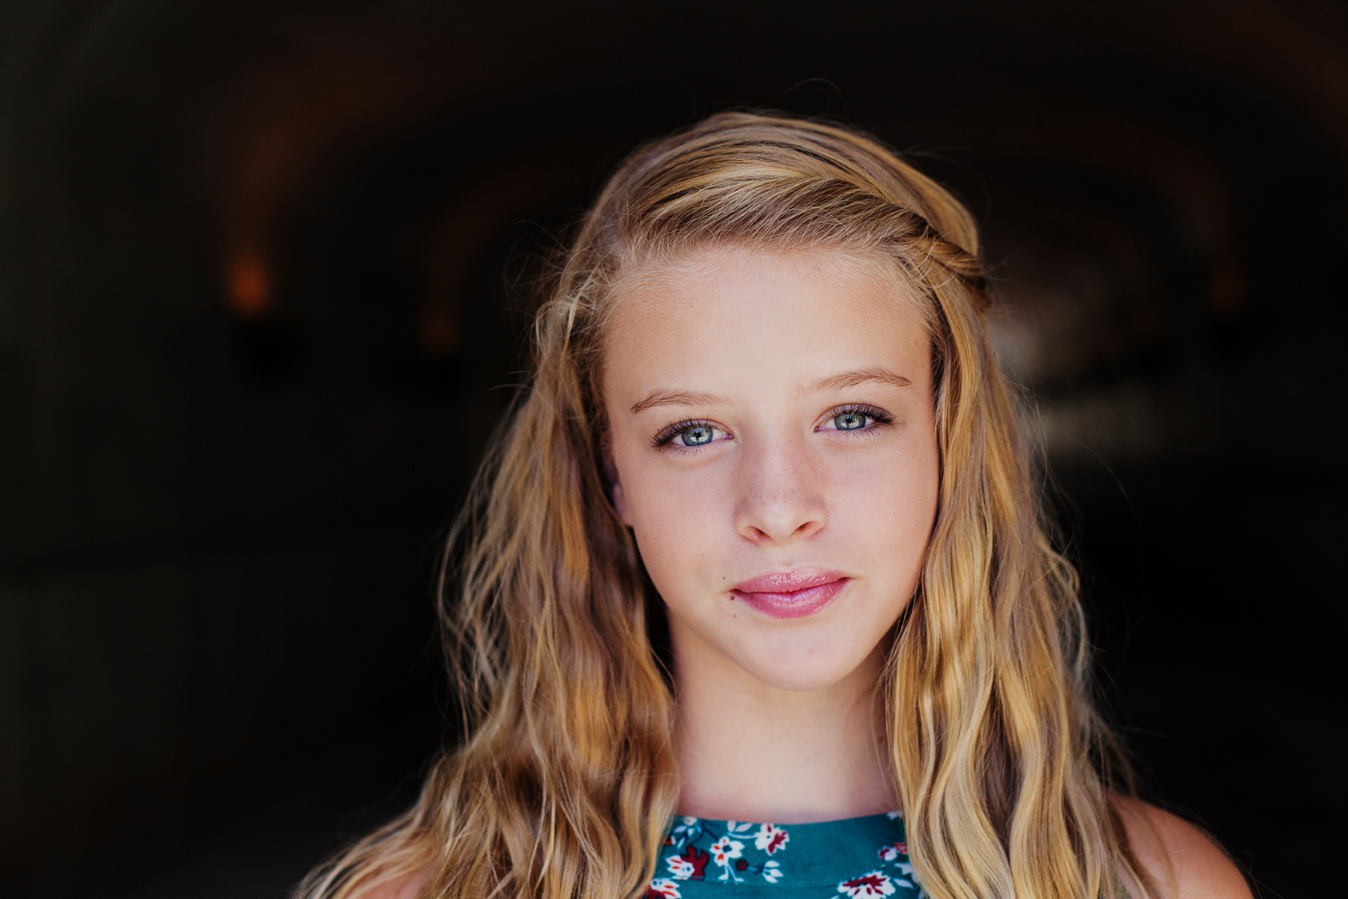 preteen portraits by The Suitcase Studio - The WHO I AM Project